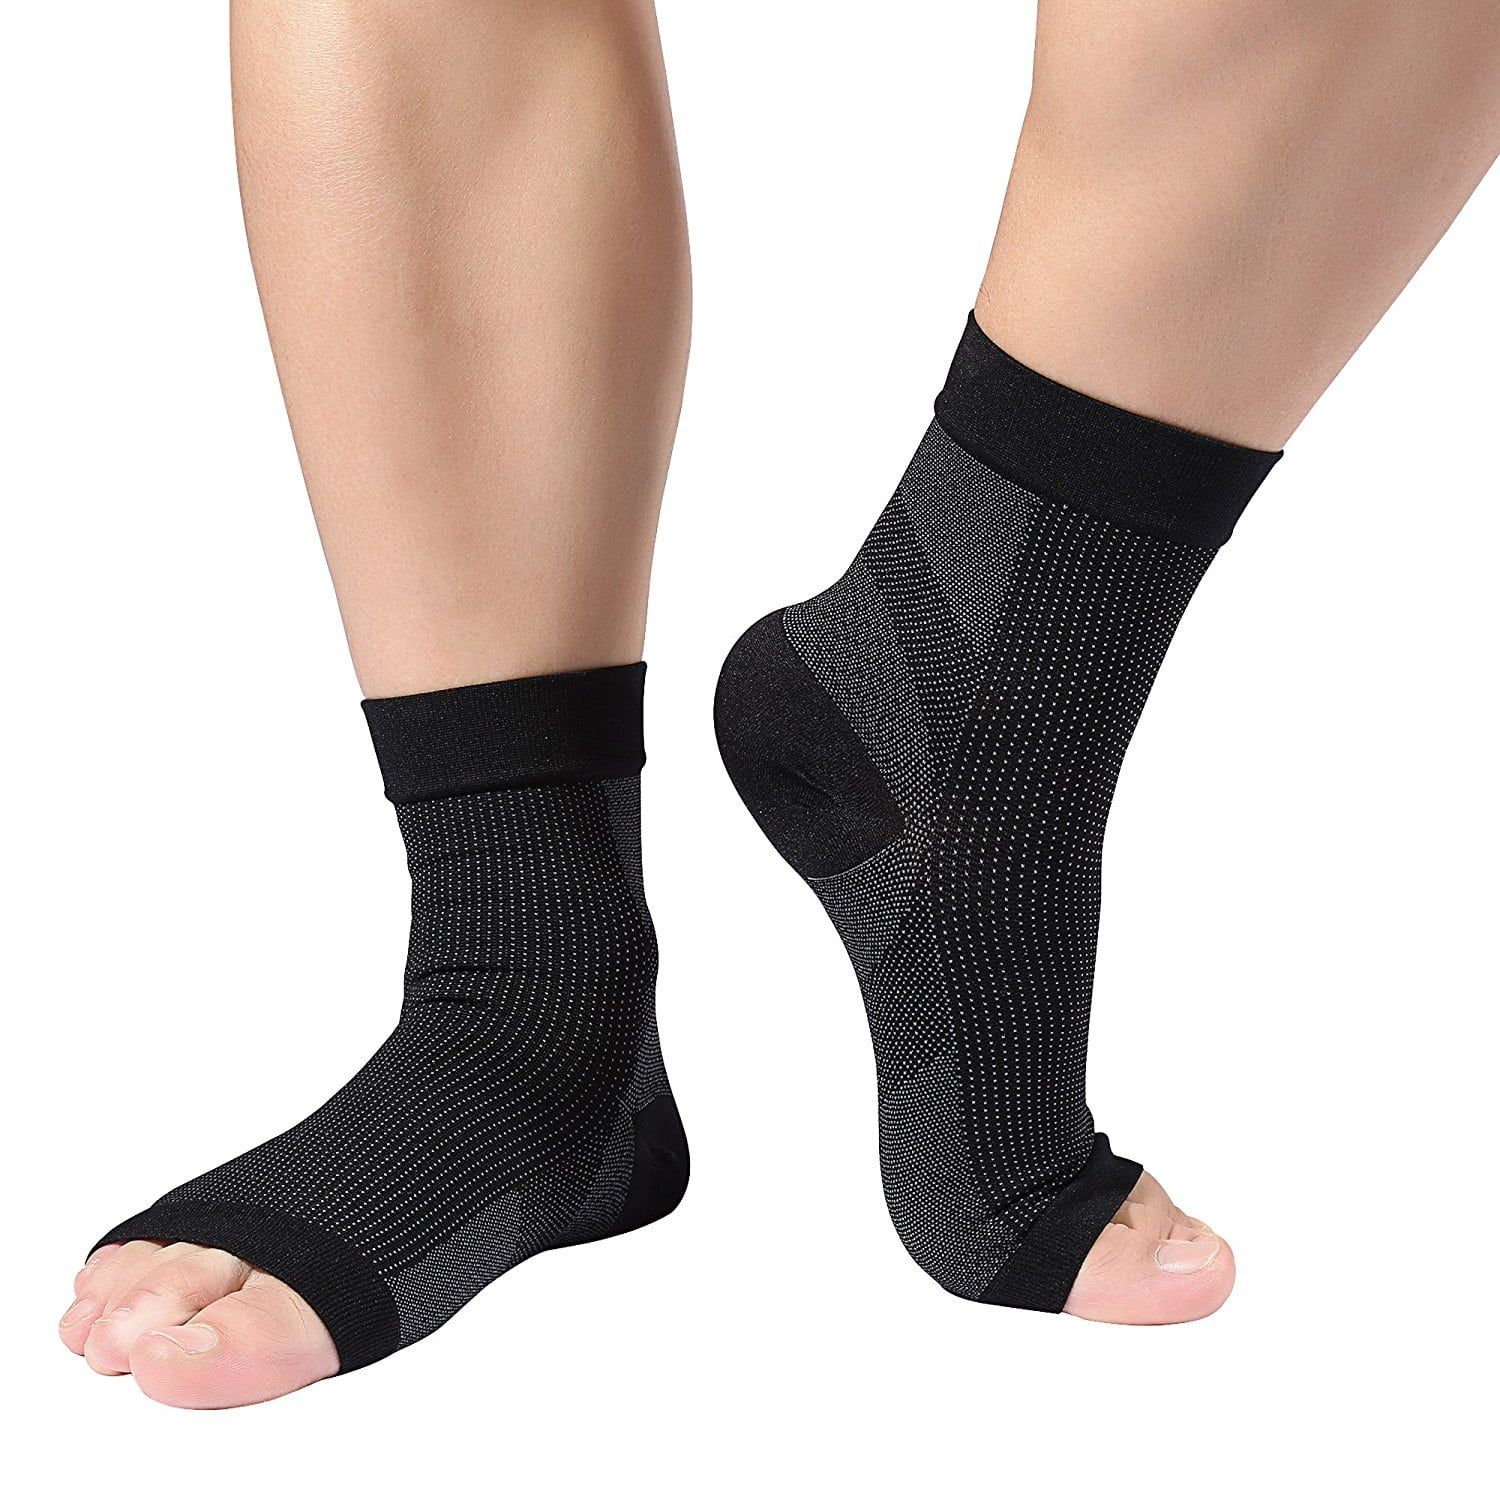 452560a9f2 The Big Reason Millions Of Americans Are Ditching Traditional Socks For  Compression Sock Soothers Plantar Fasciitis